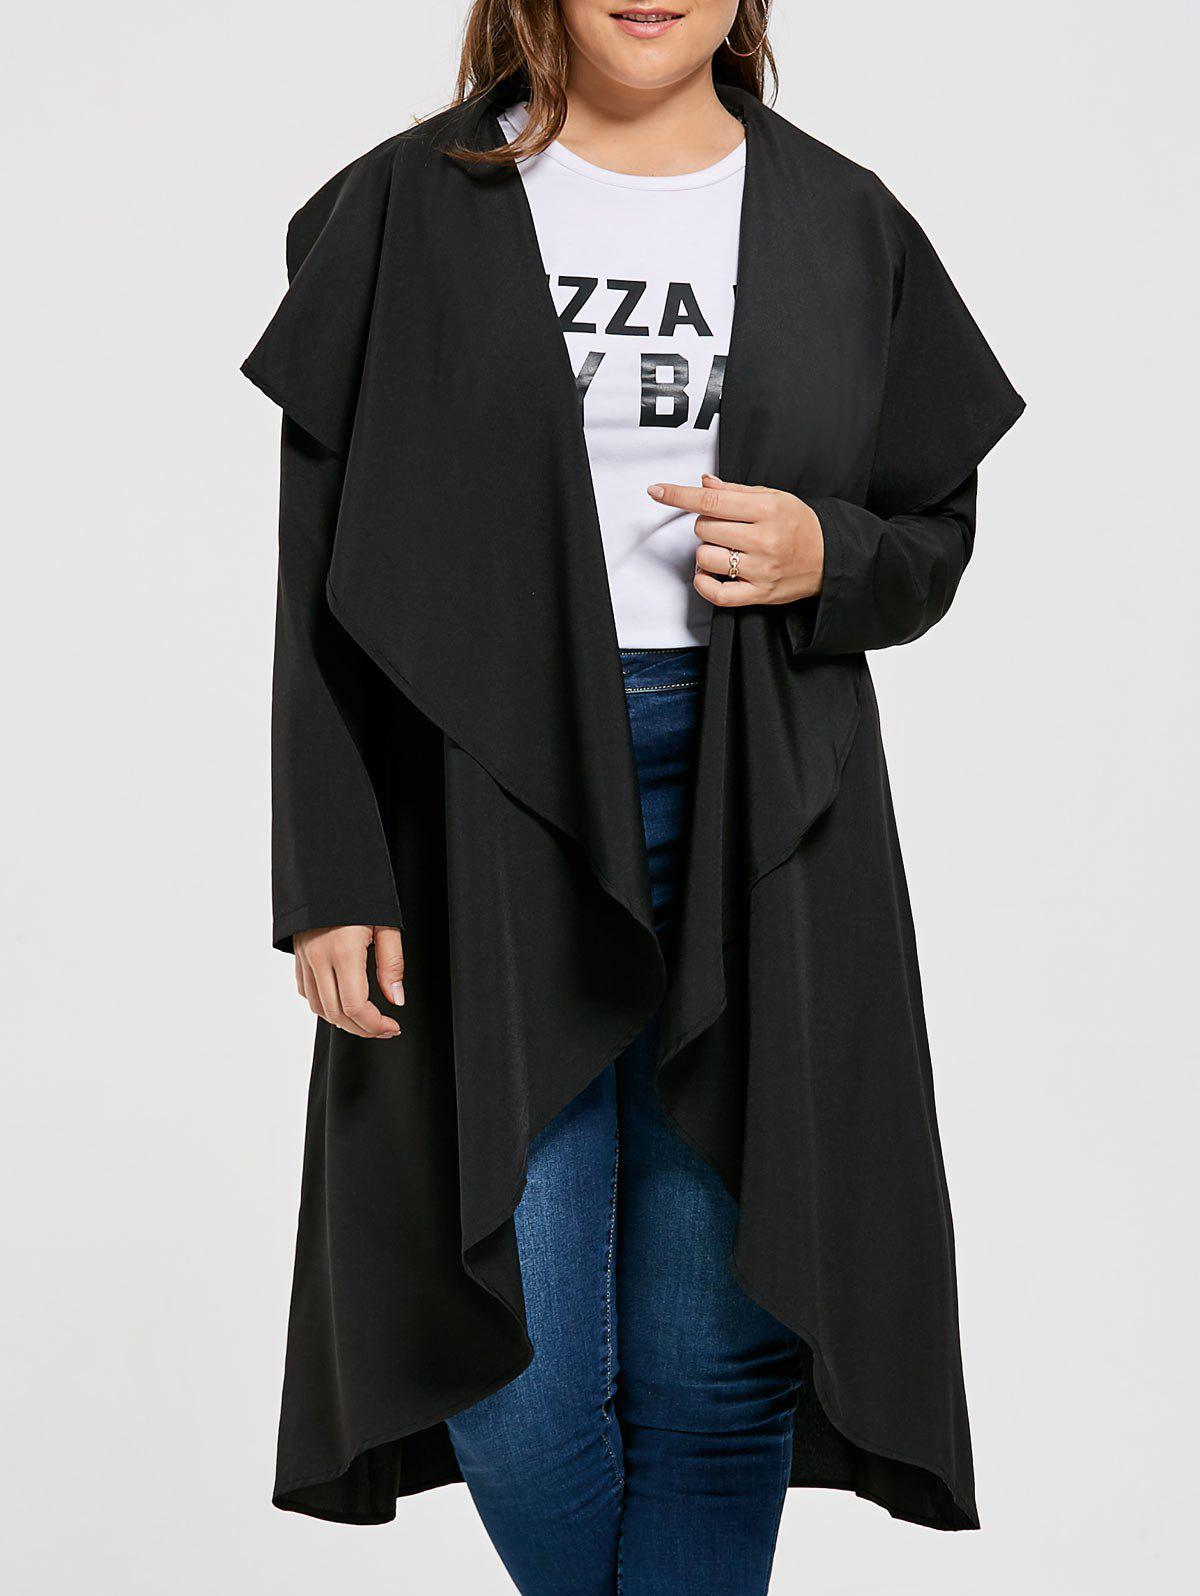 Open Front Plus Size Drape Maxi CoatWOMEN<br><br>Size: 3XL; Color: BLACK; Clothes Type: Trench; Material: Cotton Blends,Polyester; Type: Asymmetric Length; Shirt Length: X-Long; Sleeve Length: Full; Collar: Collarless; Pattern Type: Solid; Style: Fashion; Season: Fall,Winter; Weight: 0.4600kg; Package Contents: 1 x Coat;